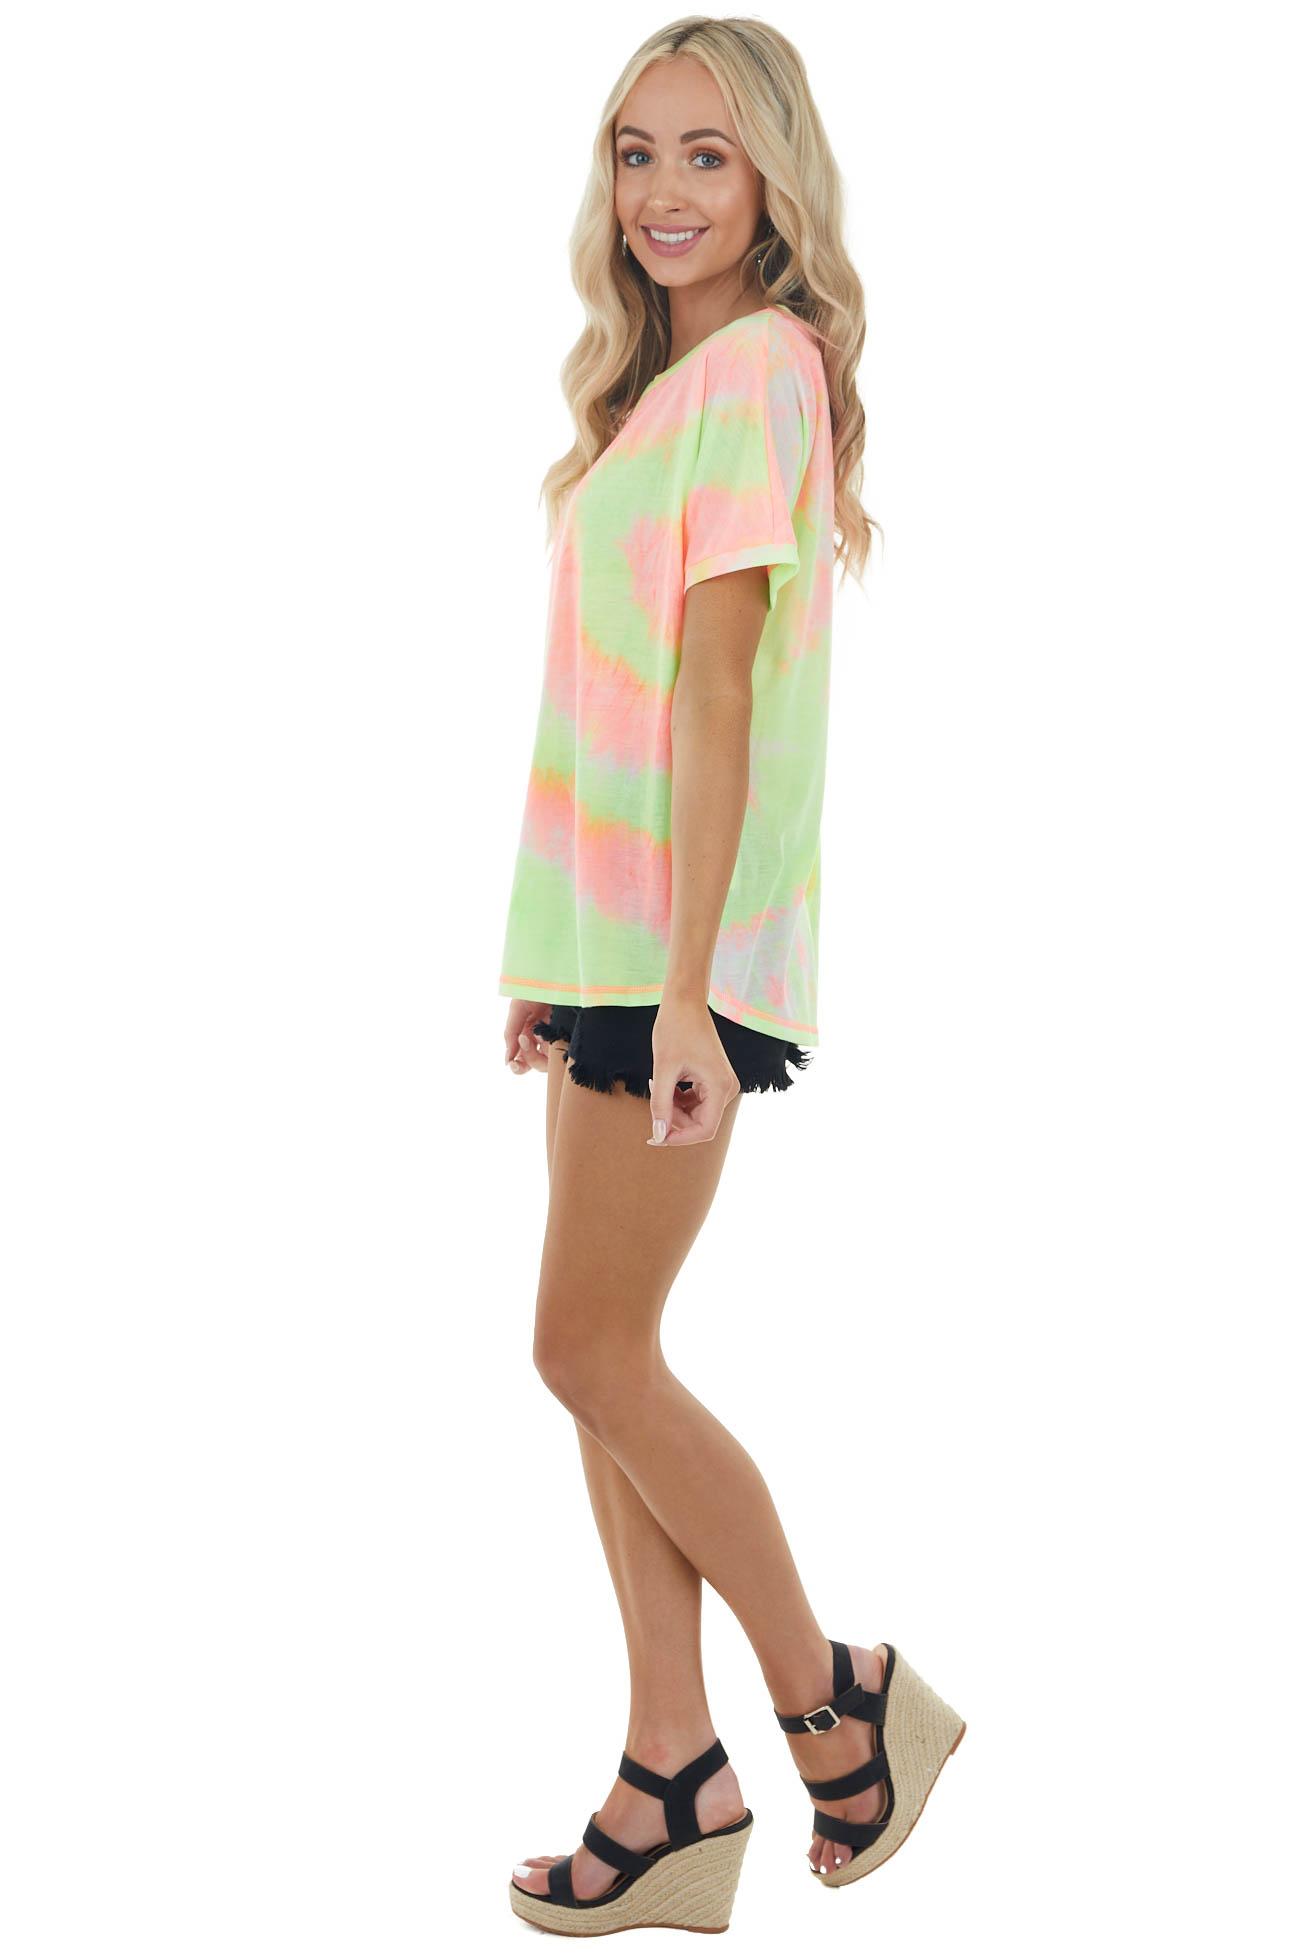 Neon Pink and Neon Yellow Tie Dye Short Sleeve Knit Top